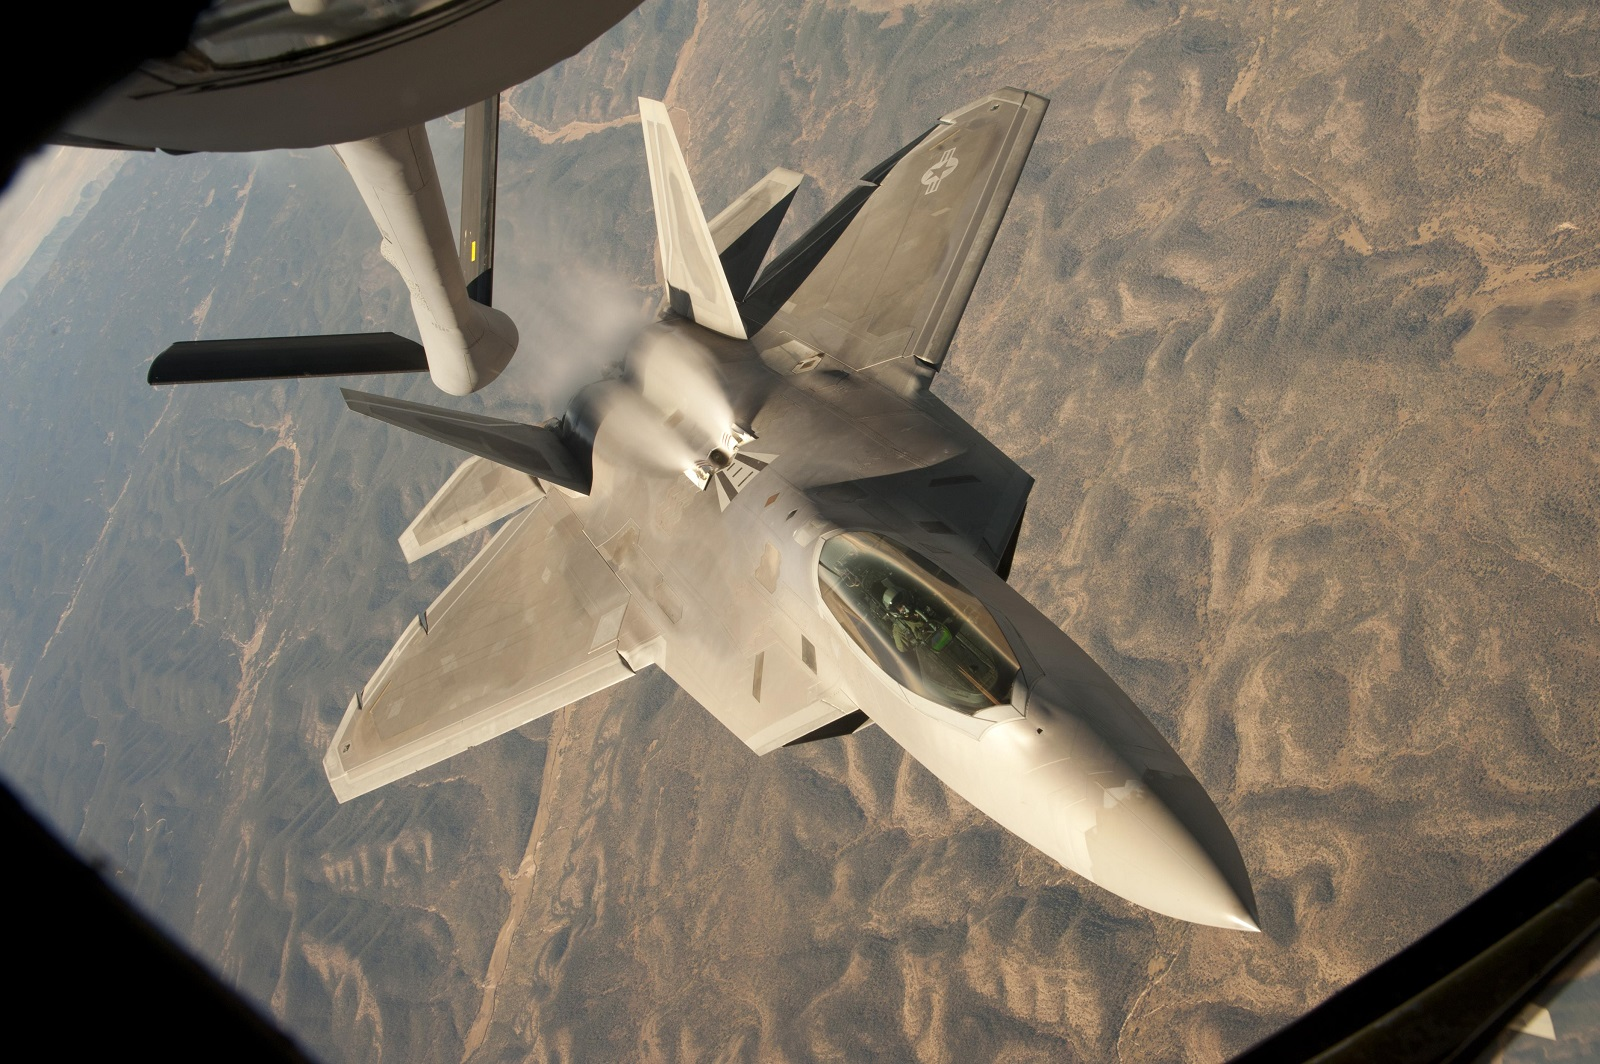 The Air Force Loves the F-22 Raptor. So Why Not Build More of Them?